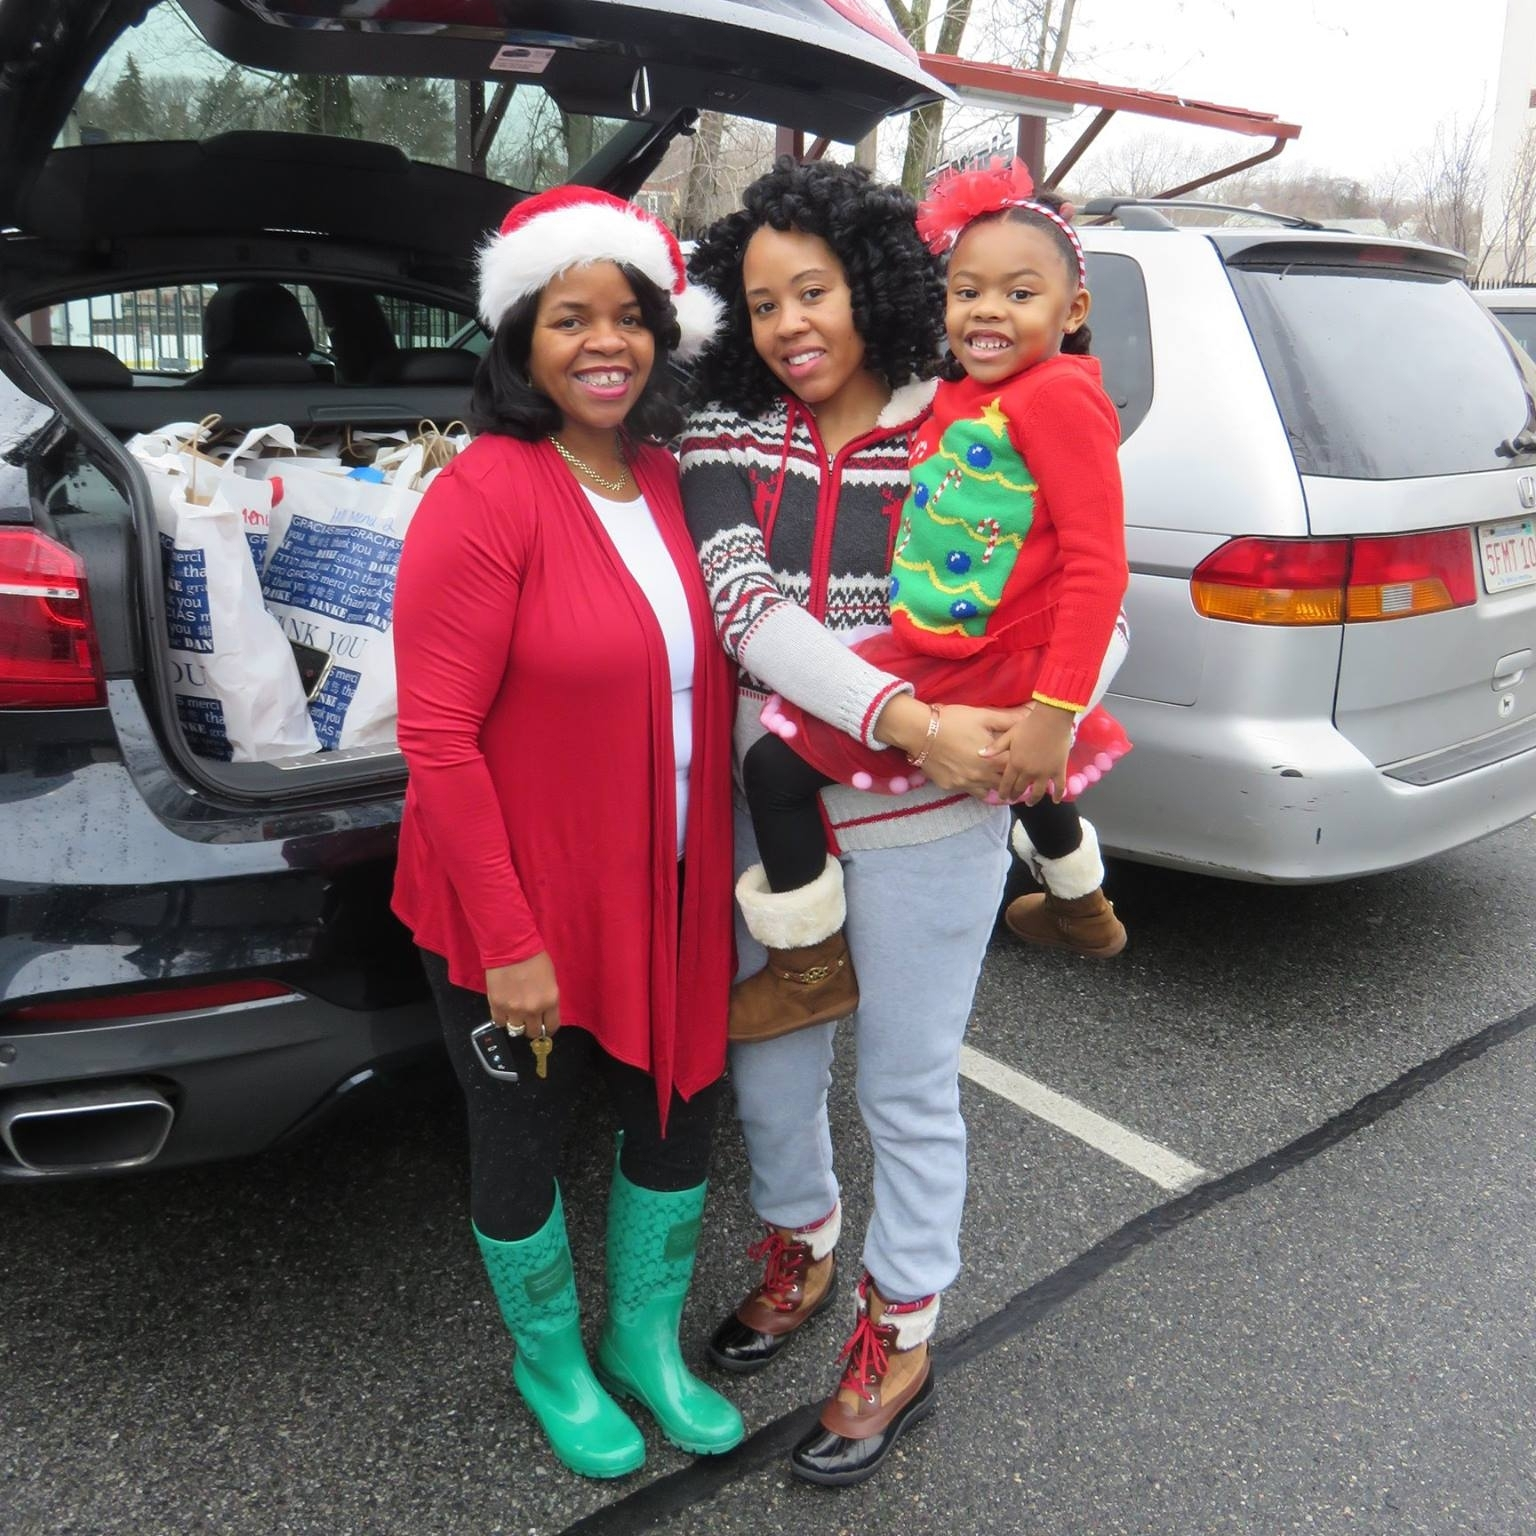 High fives to this local family that volunteers every December for Holiday Meal Delivery